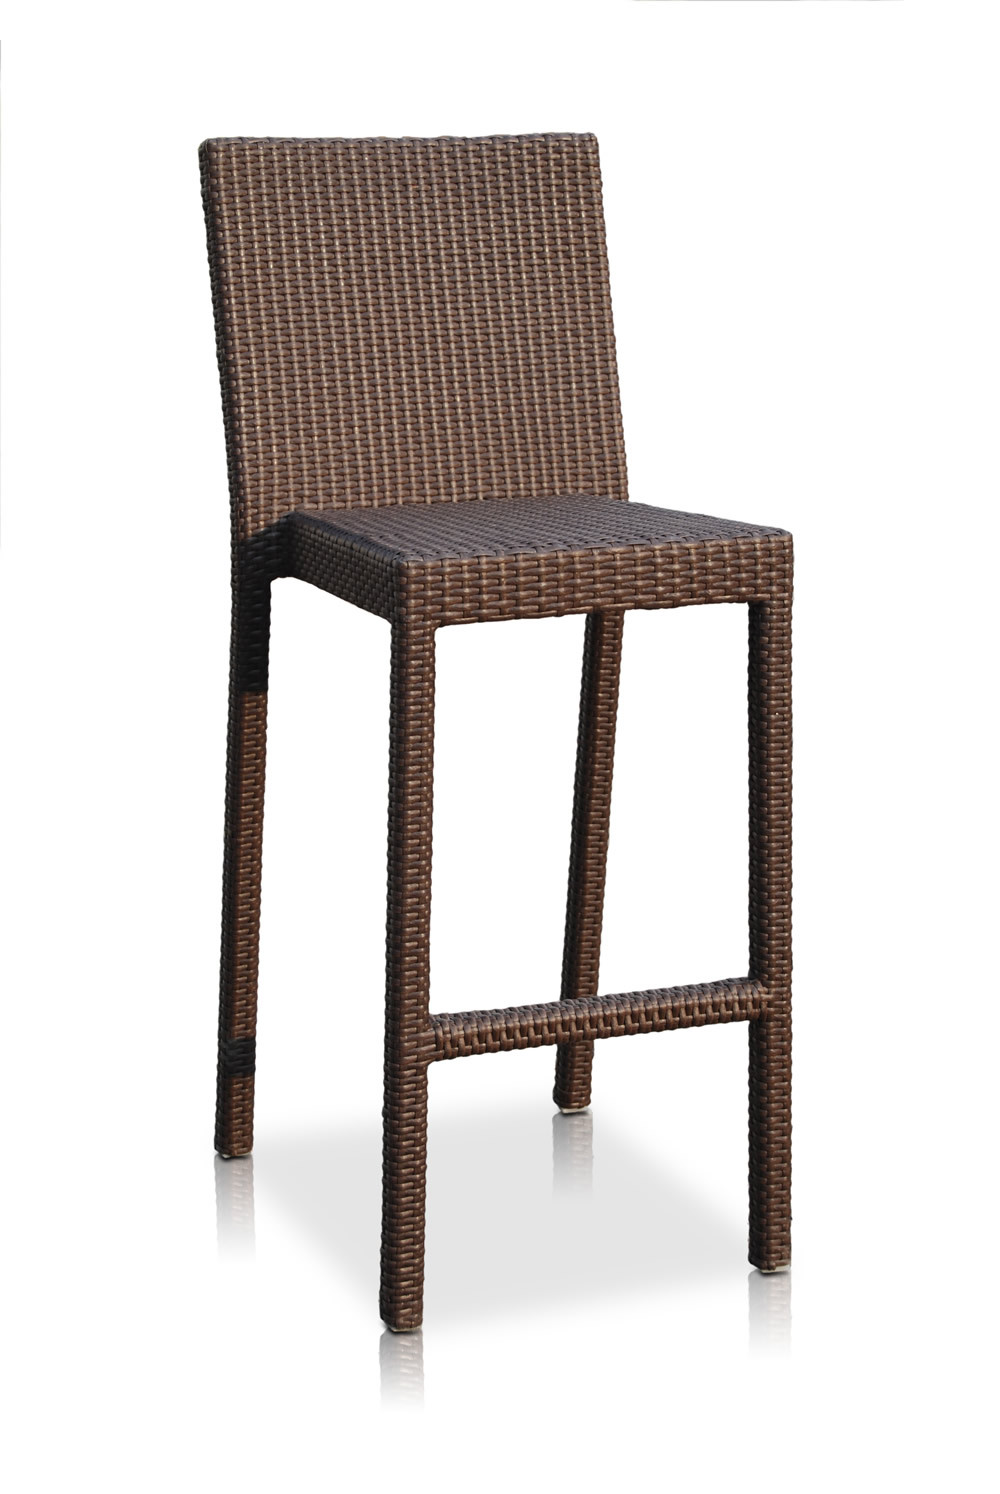 Hospitality Rattan Sydney Stackable Wicker Bar Stool